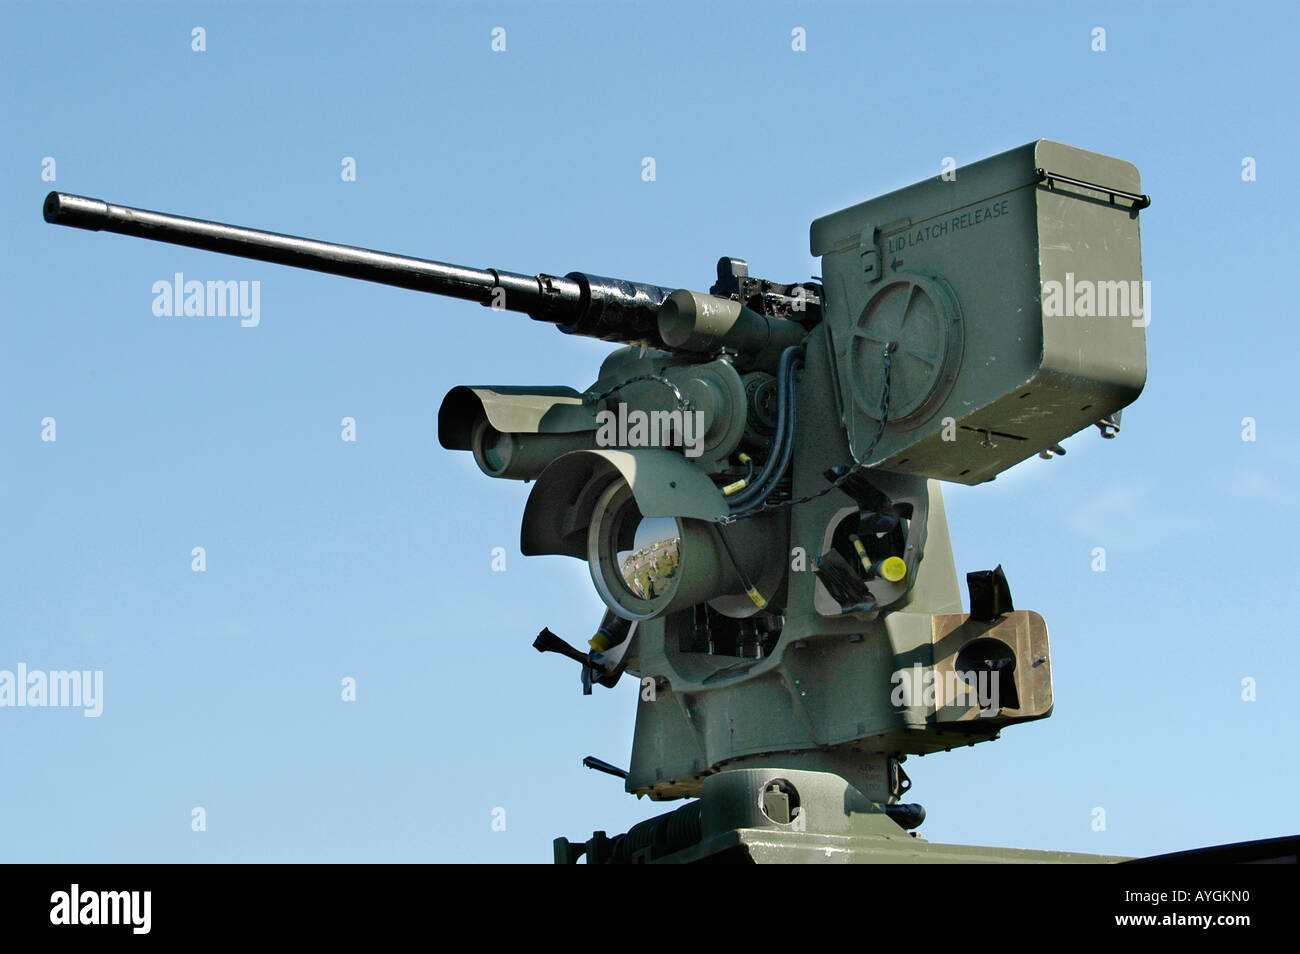 Machine gun mounted atop an Army tank - Stock Image